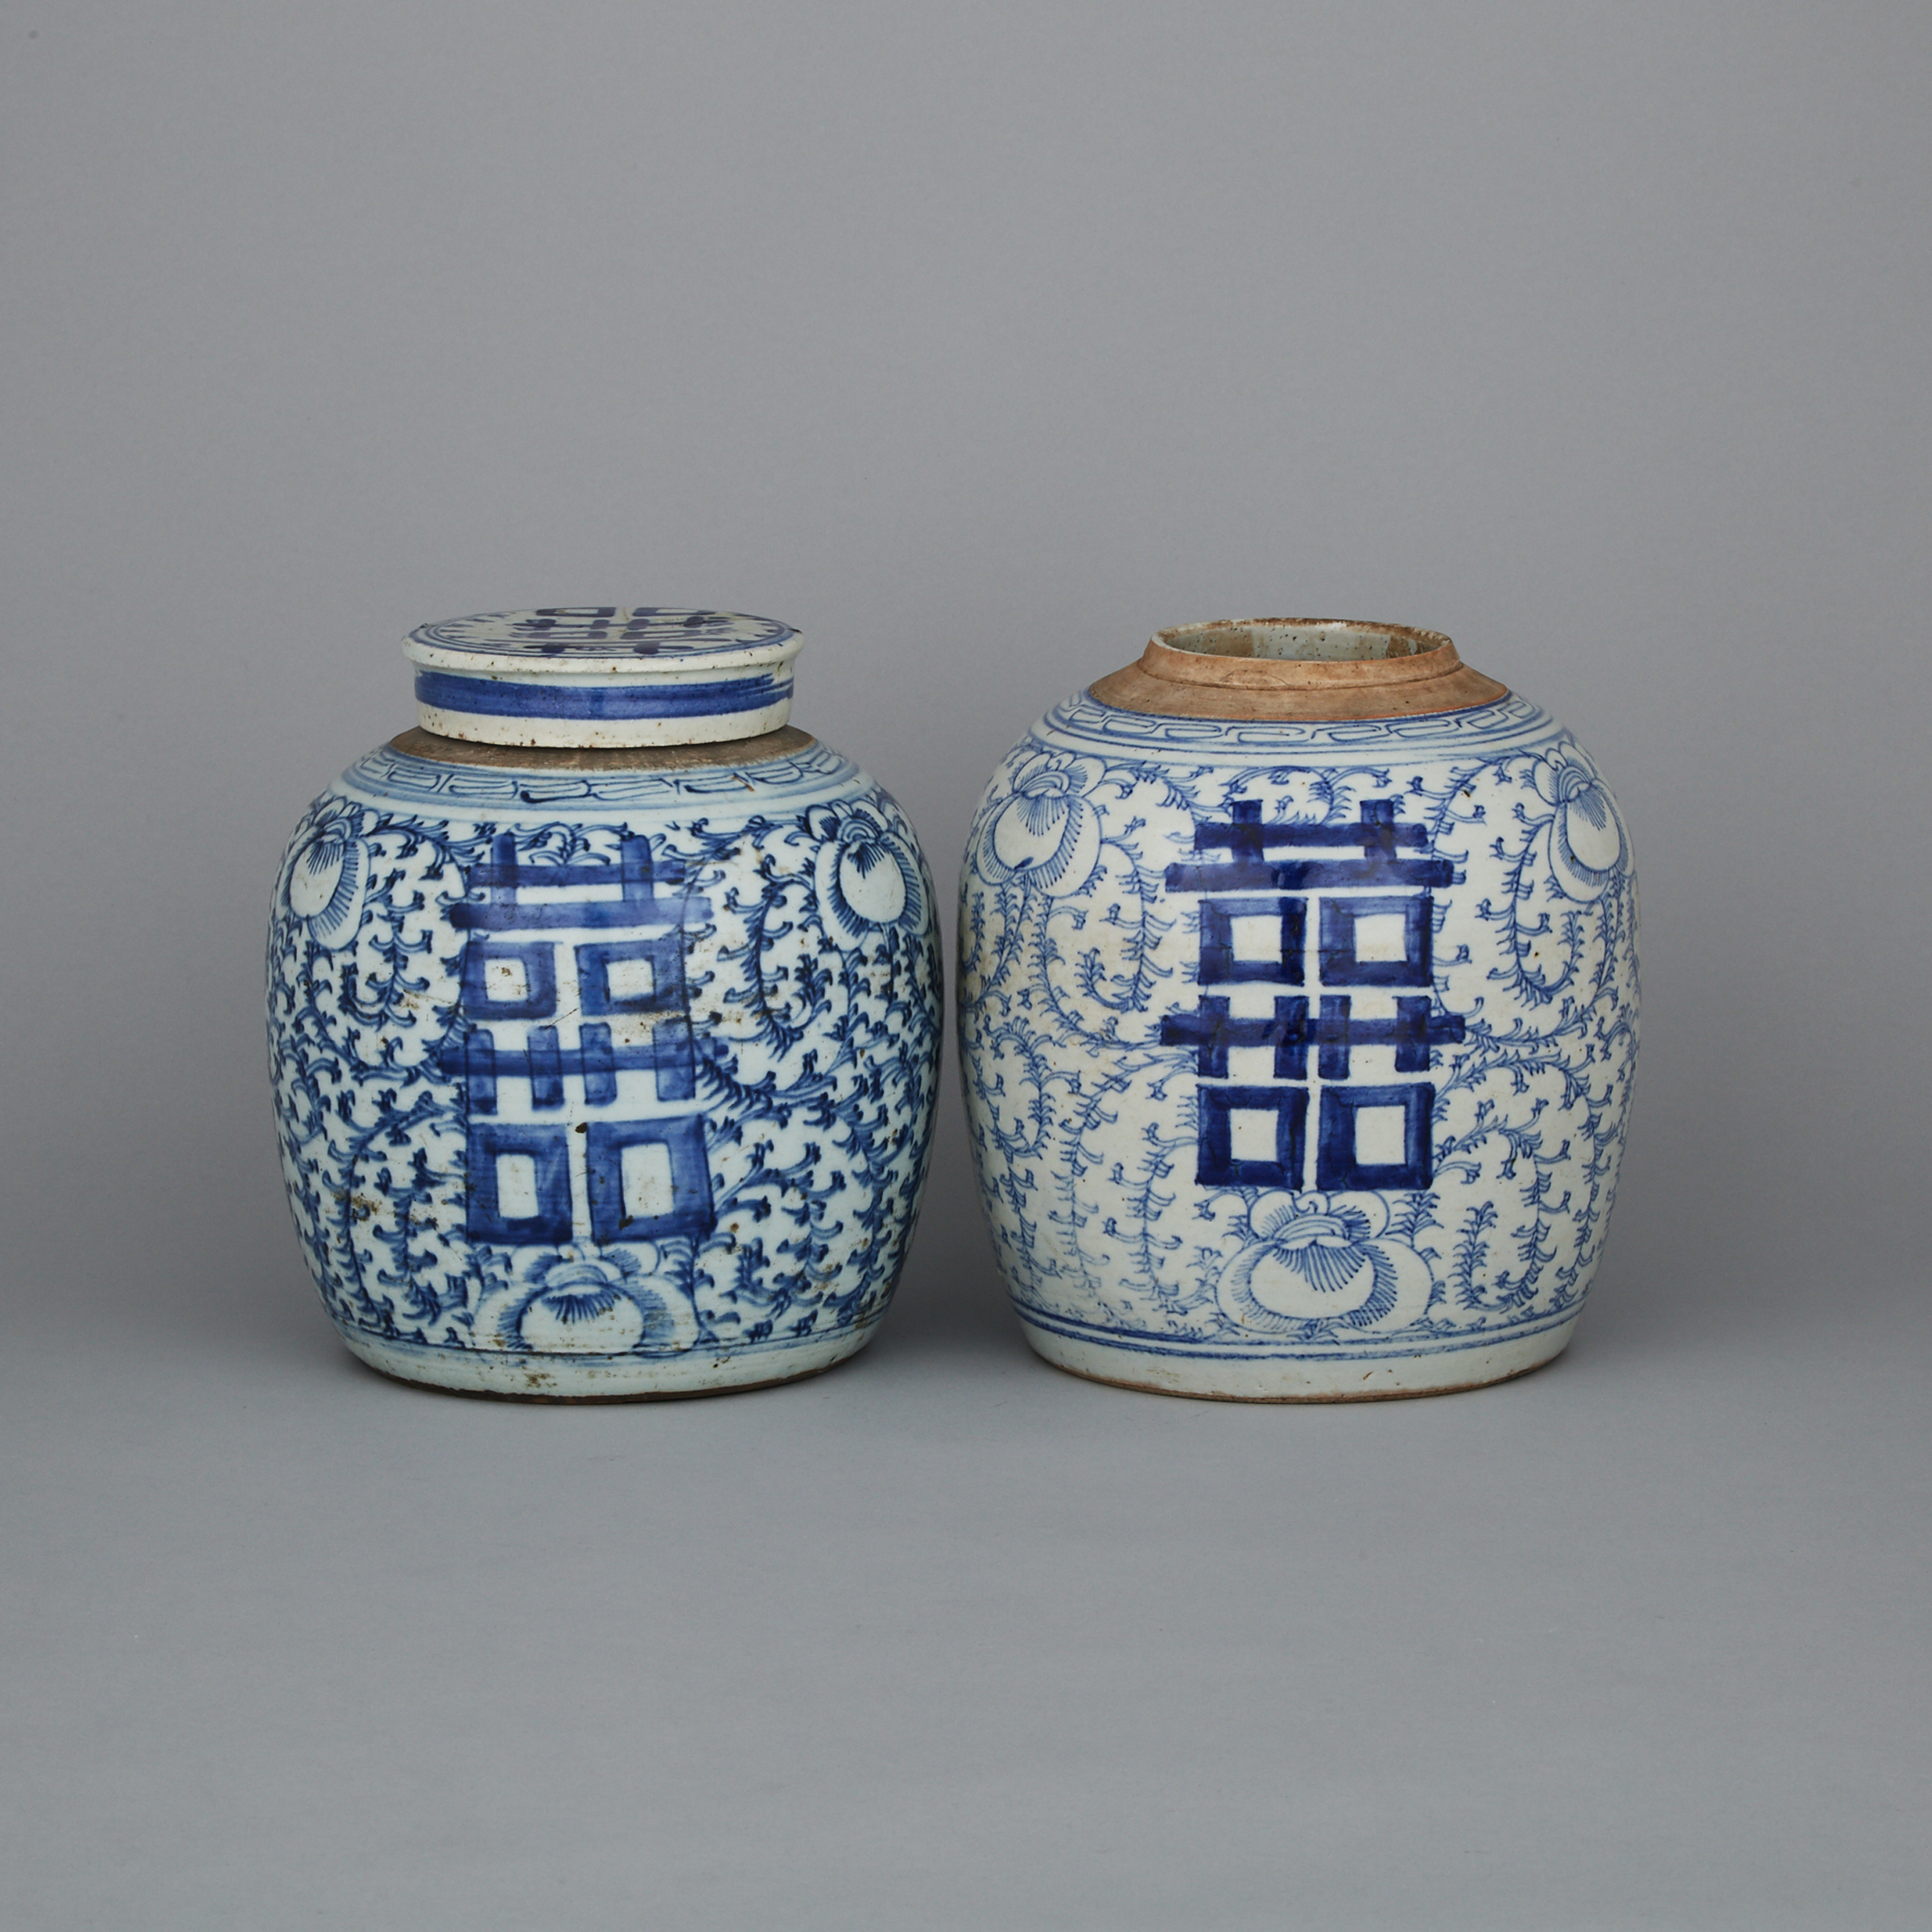 Two Blue and White 'Double Happiness' Ginger Jars, 19th Century